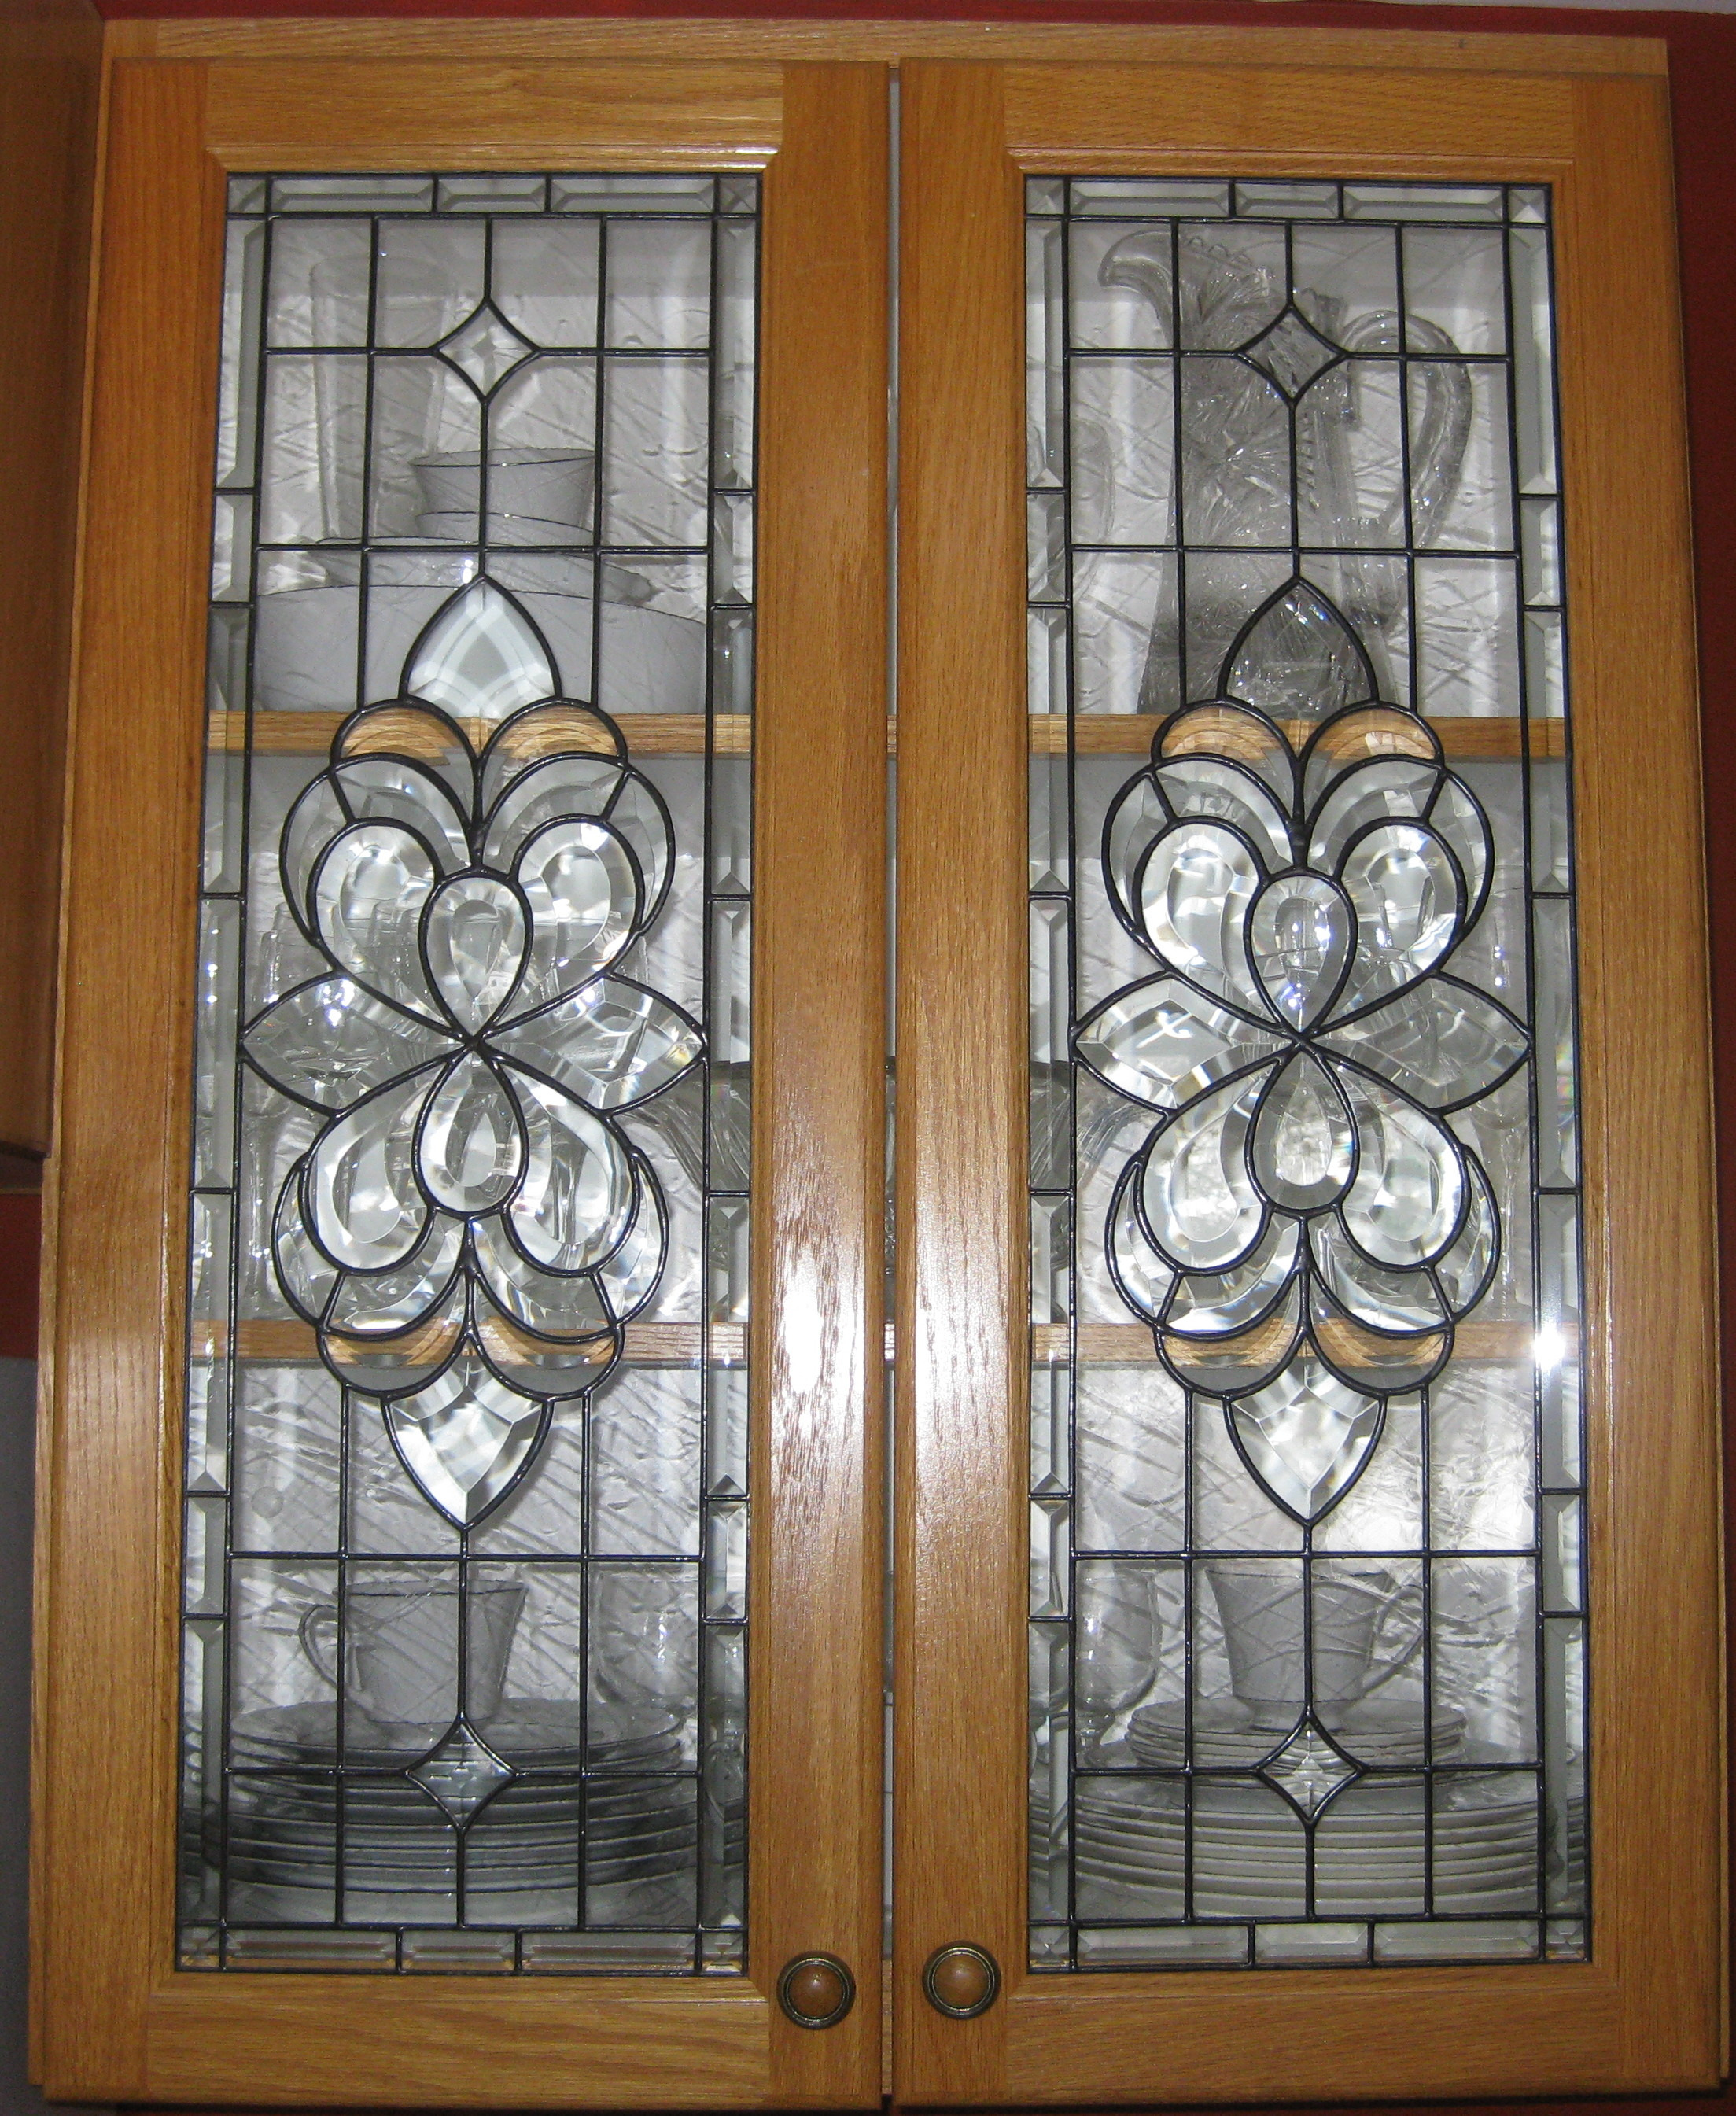 Cabinet Door Inserts Lovely Stained Glass Supplies Patterns Classes Glass Fusing for